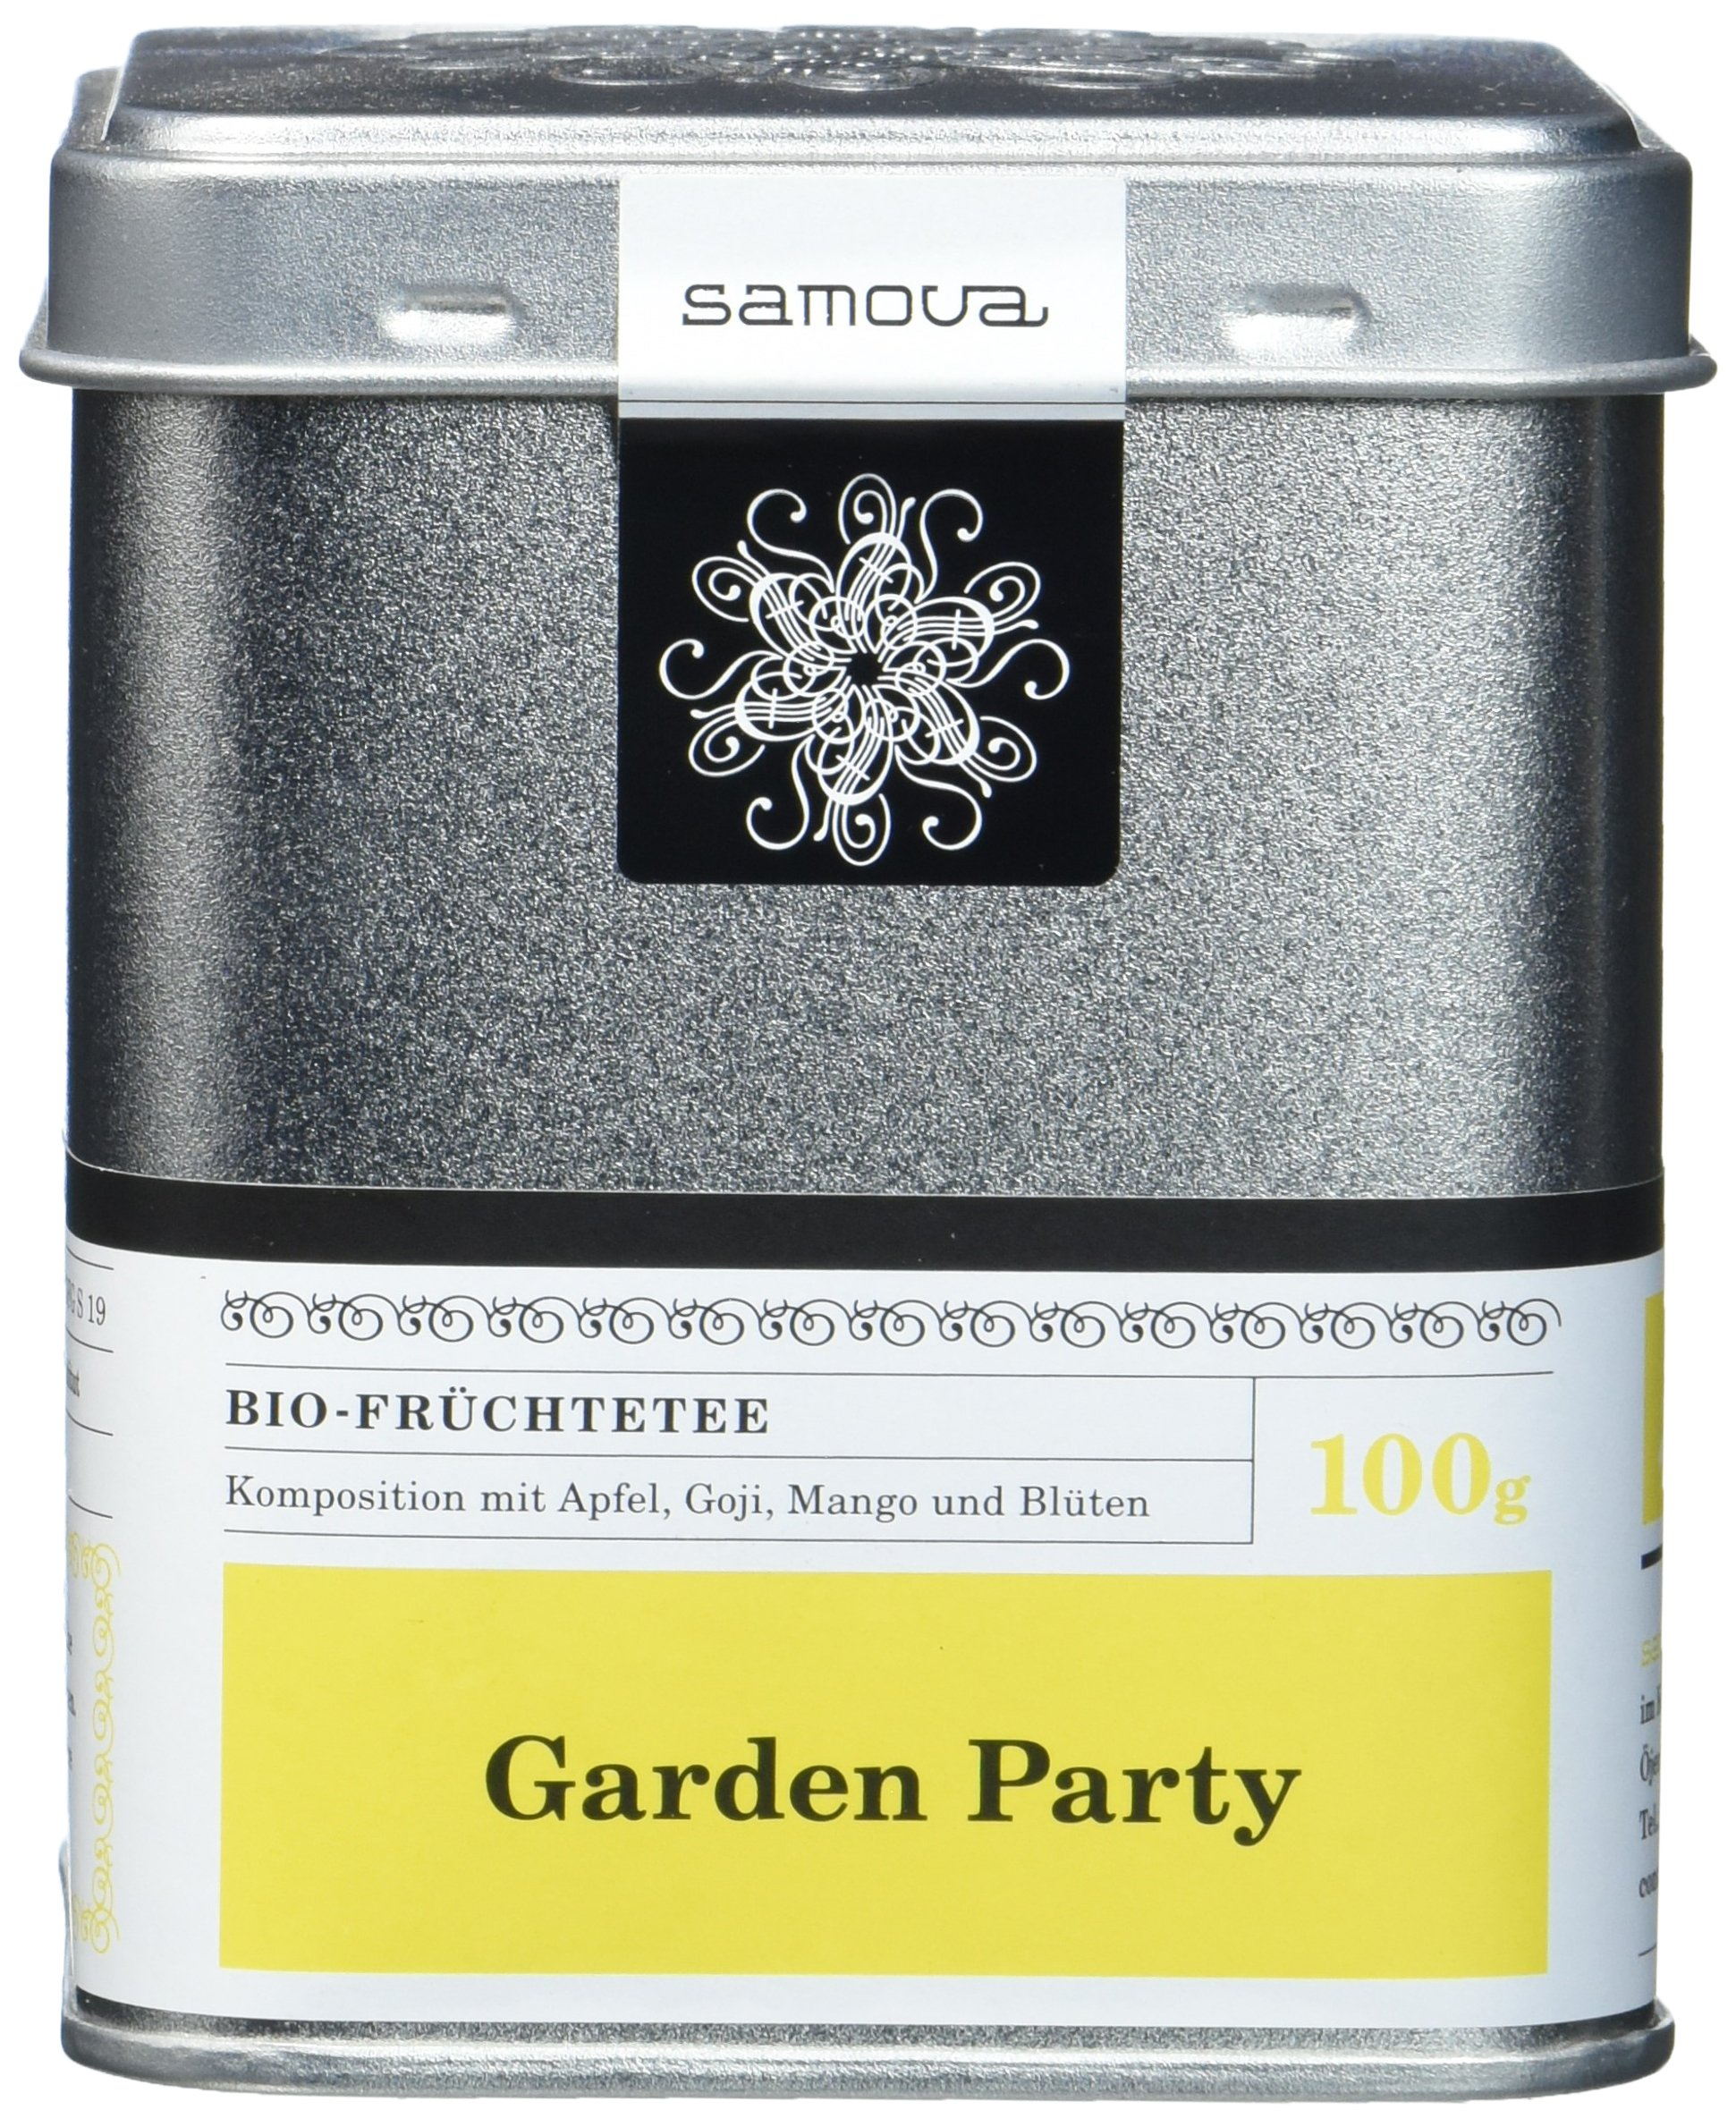 Samova-Garden-Party-1er-Pack-1-x-100-g-Bio